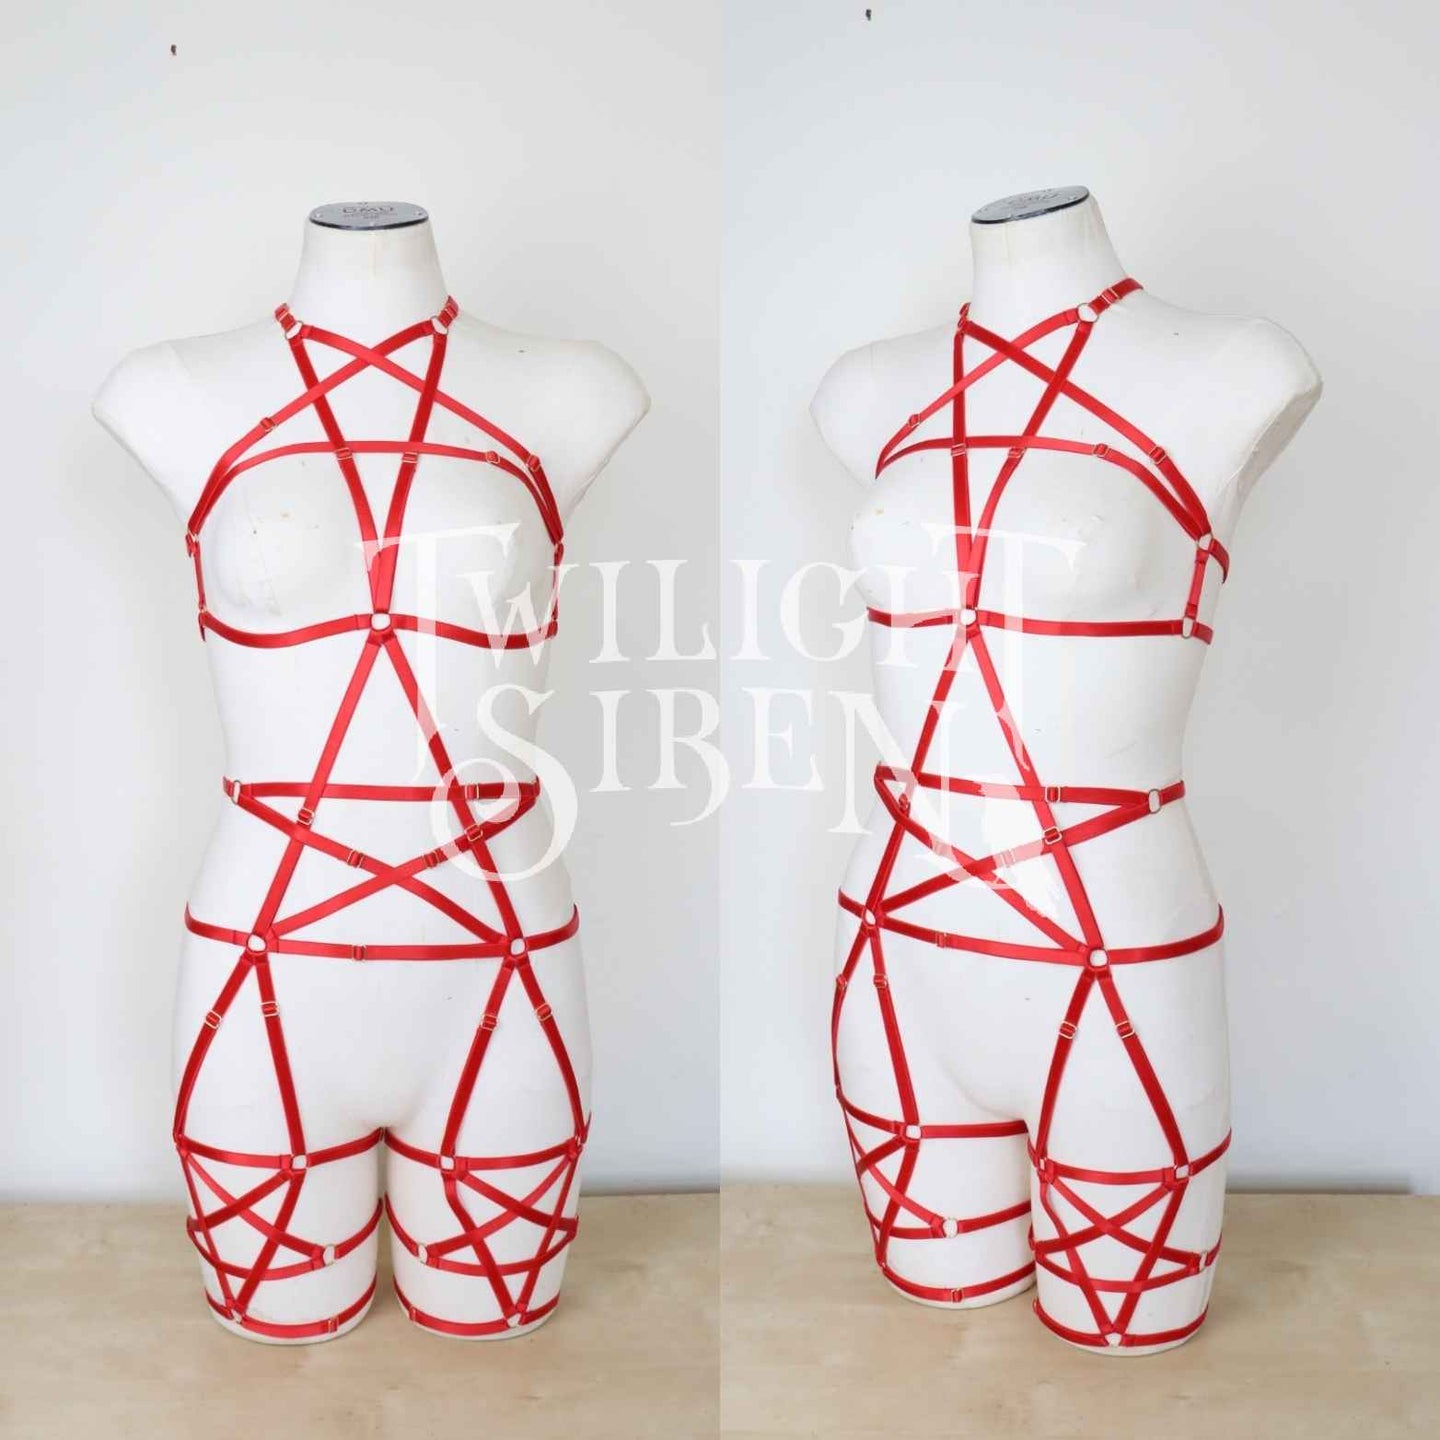 RED PENTAGRAM FULL BODY PLAYSUIT HARNESS UK 16-18